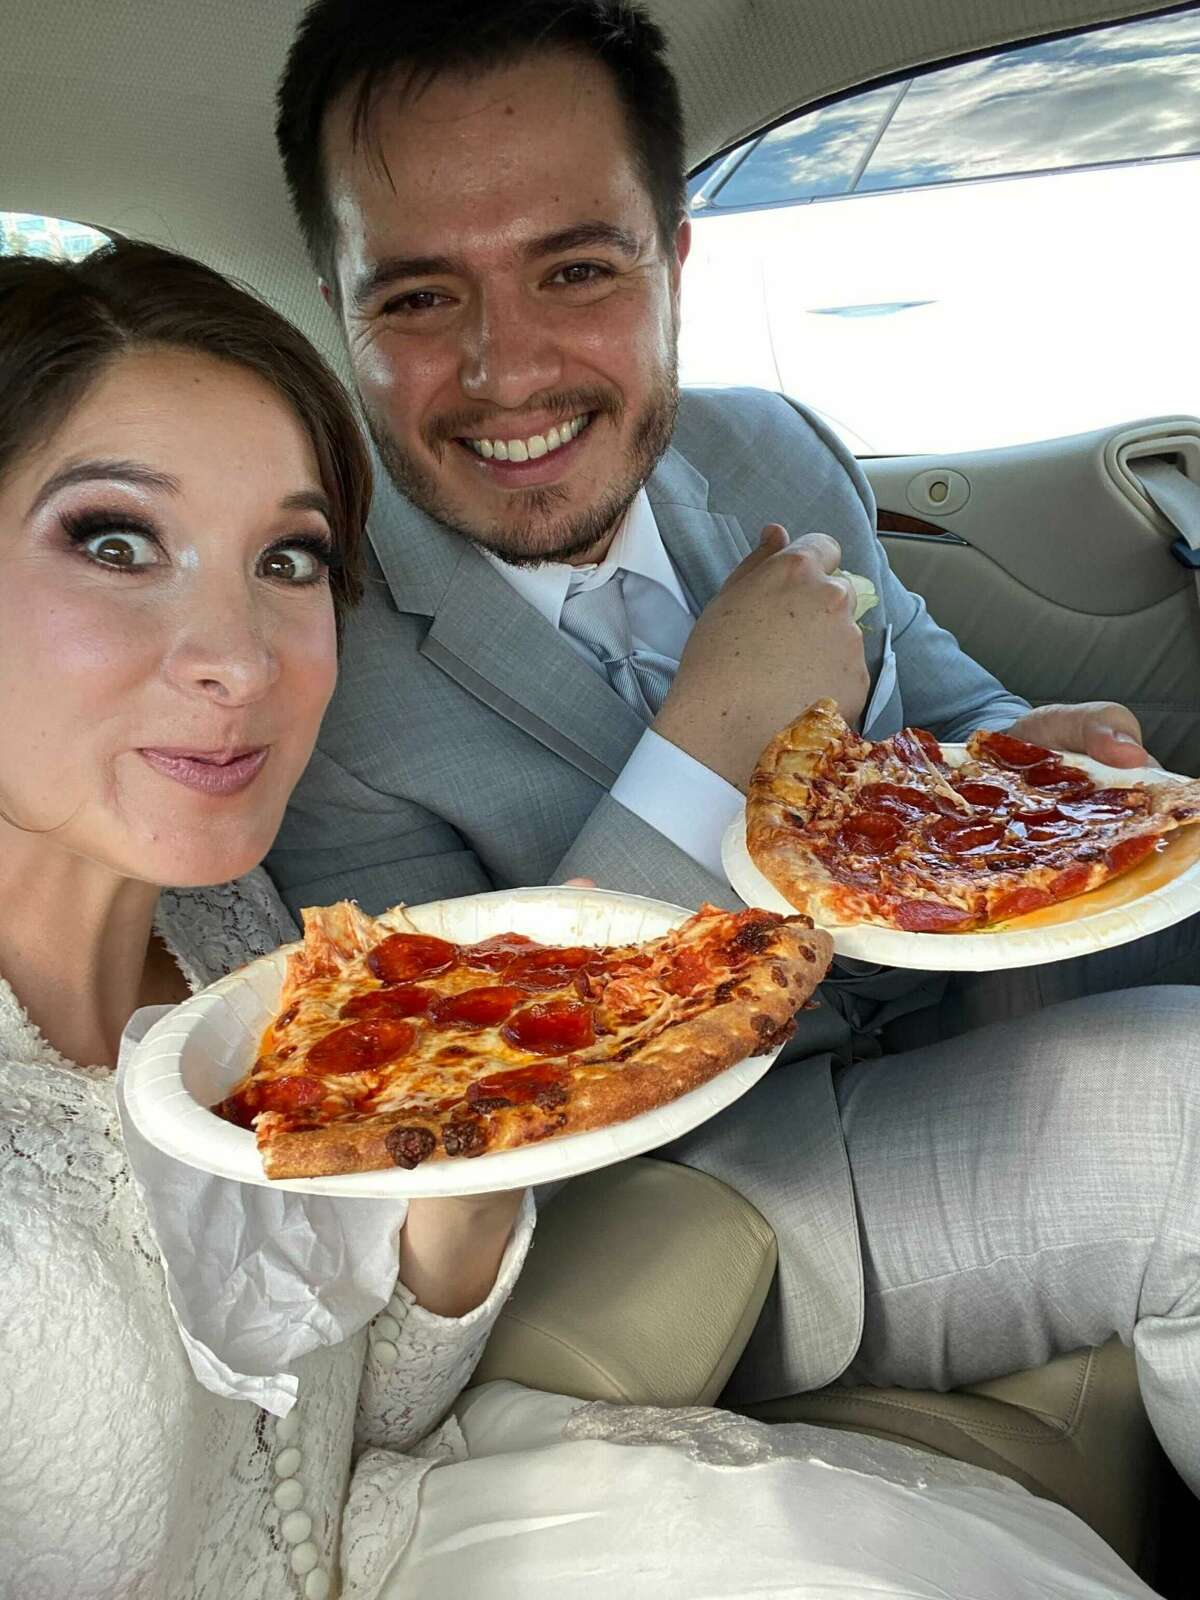 Mariana and her husband Gerado made a stop at Costco after their wedding to enjoy a slice of their favorite pizza.